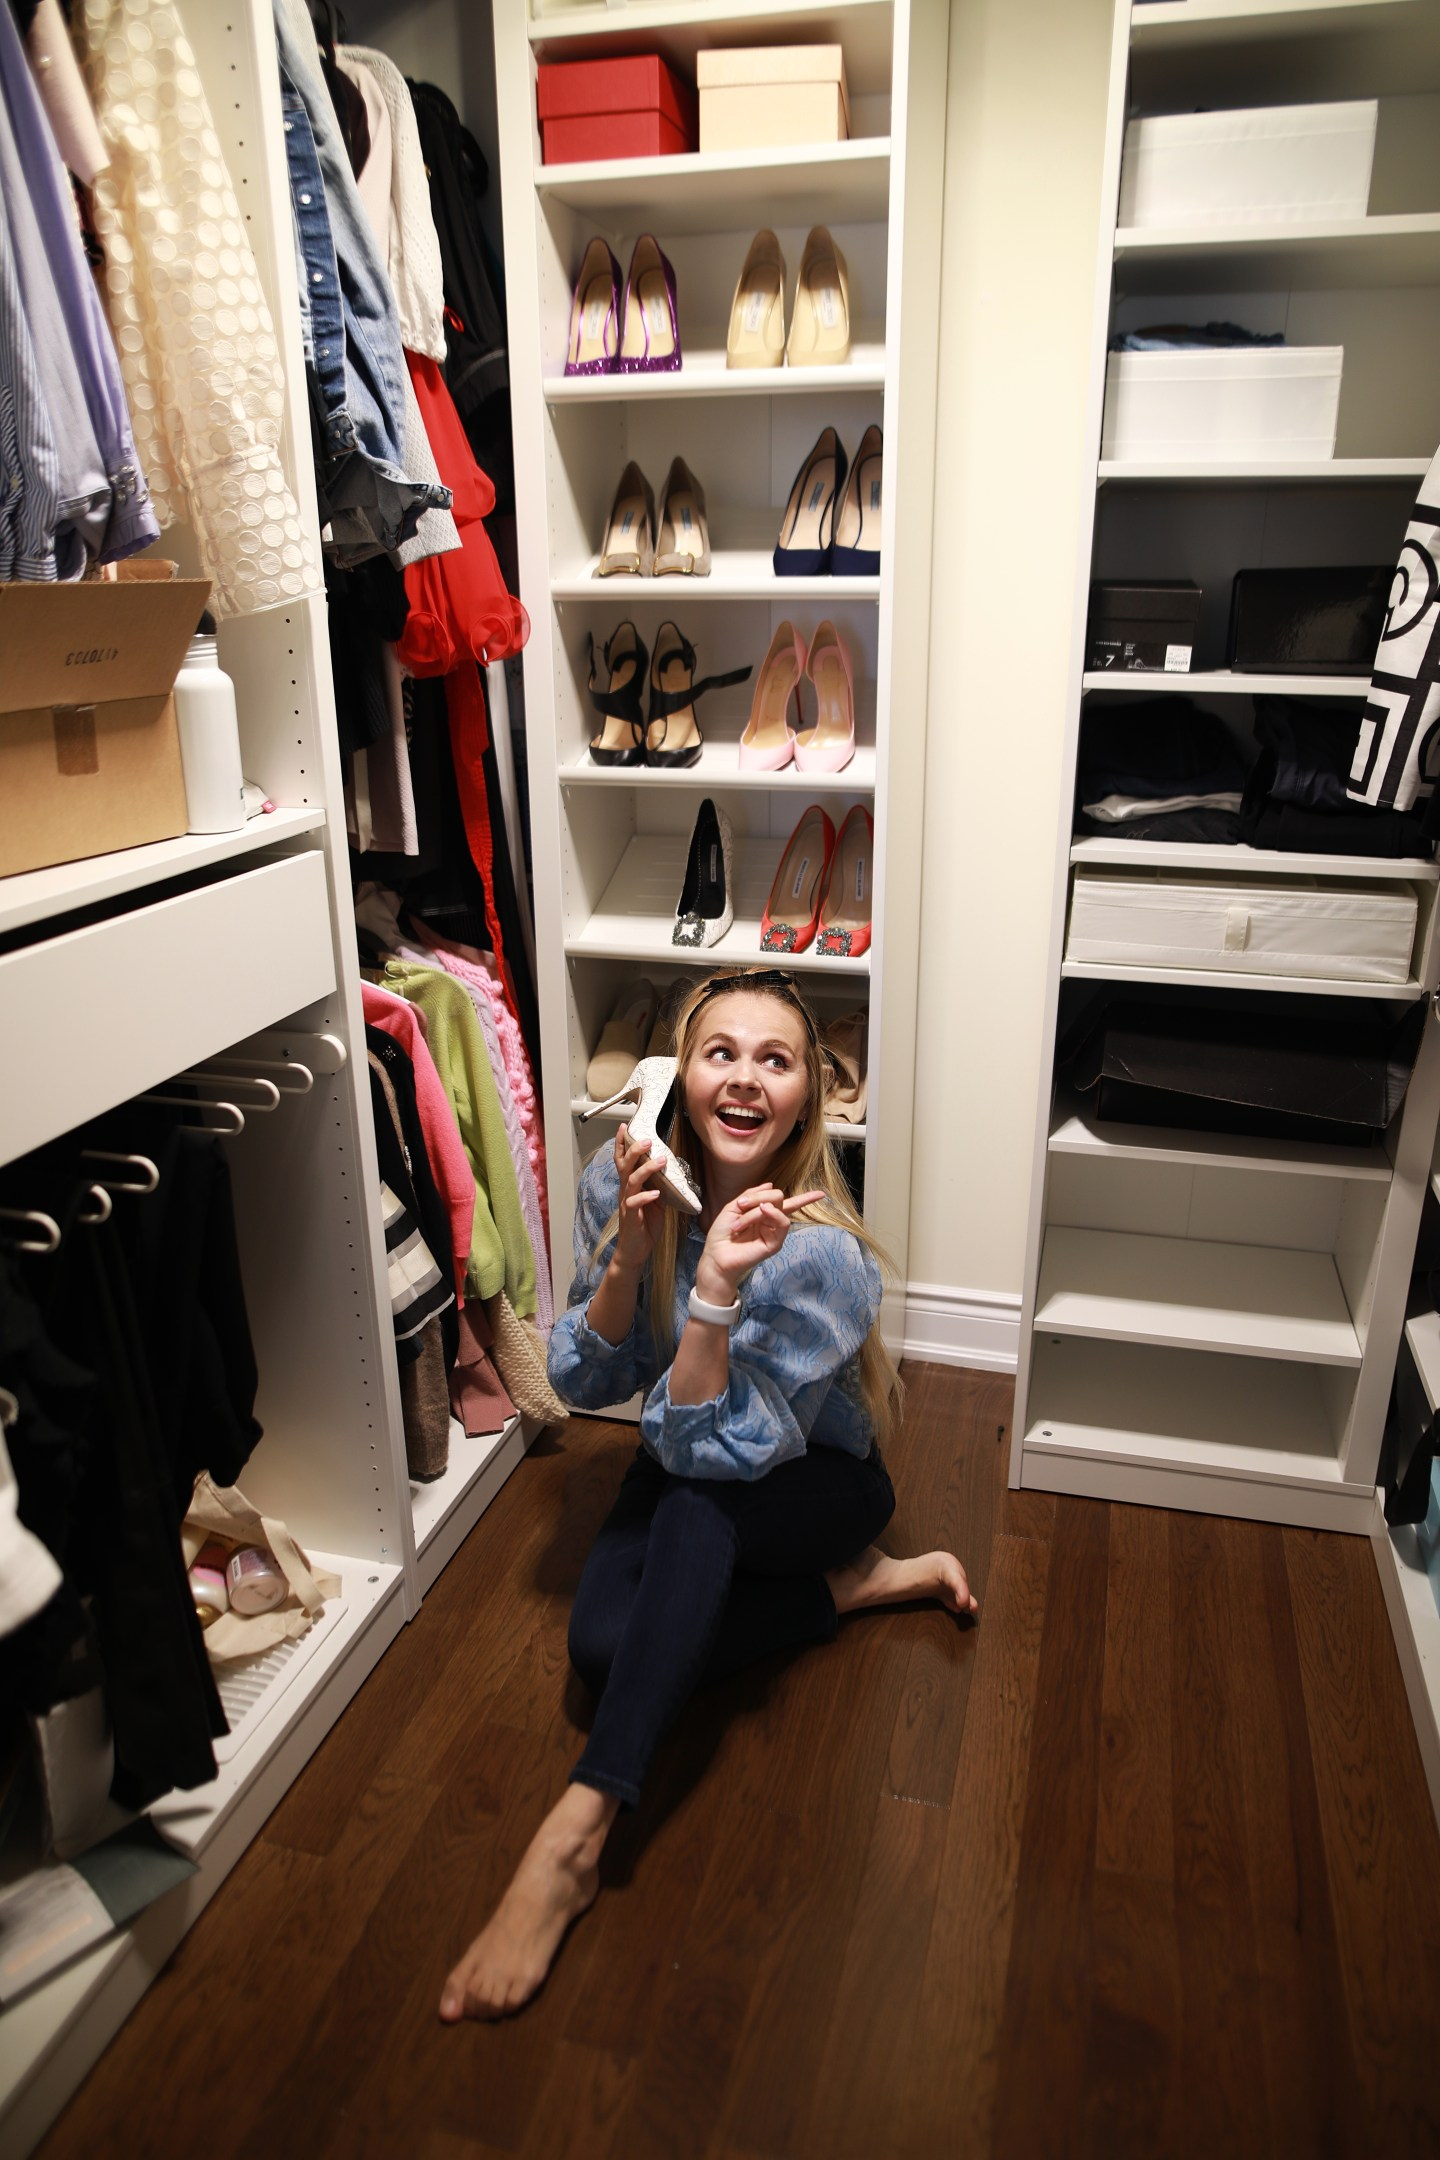 Smart Tips to Organize Your Wardrobes While You Are In Quarantine